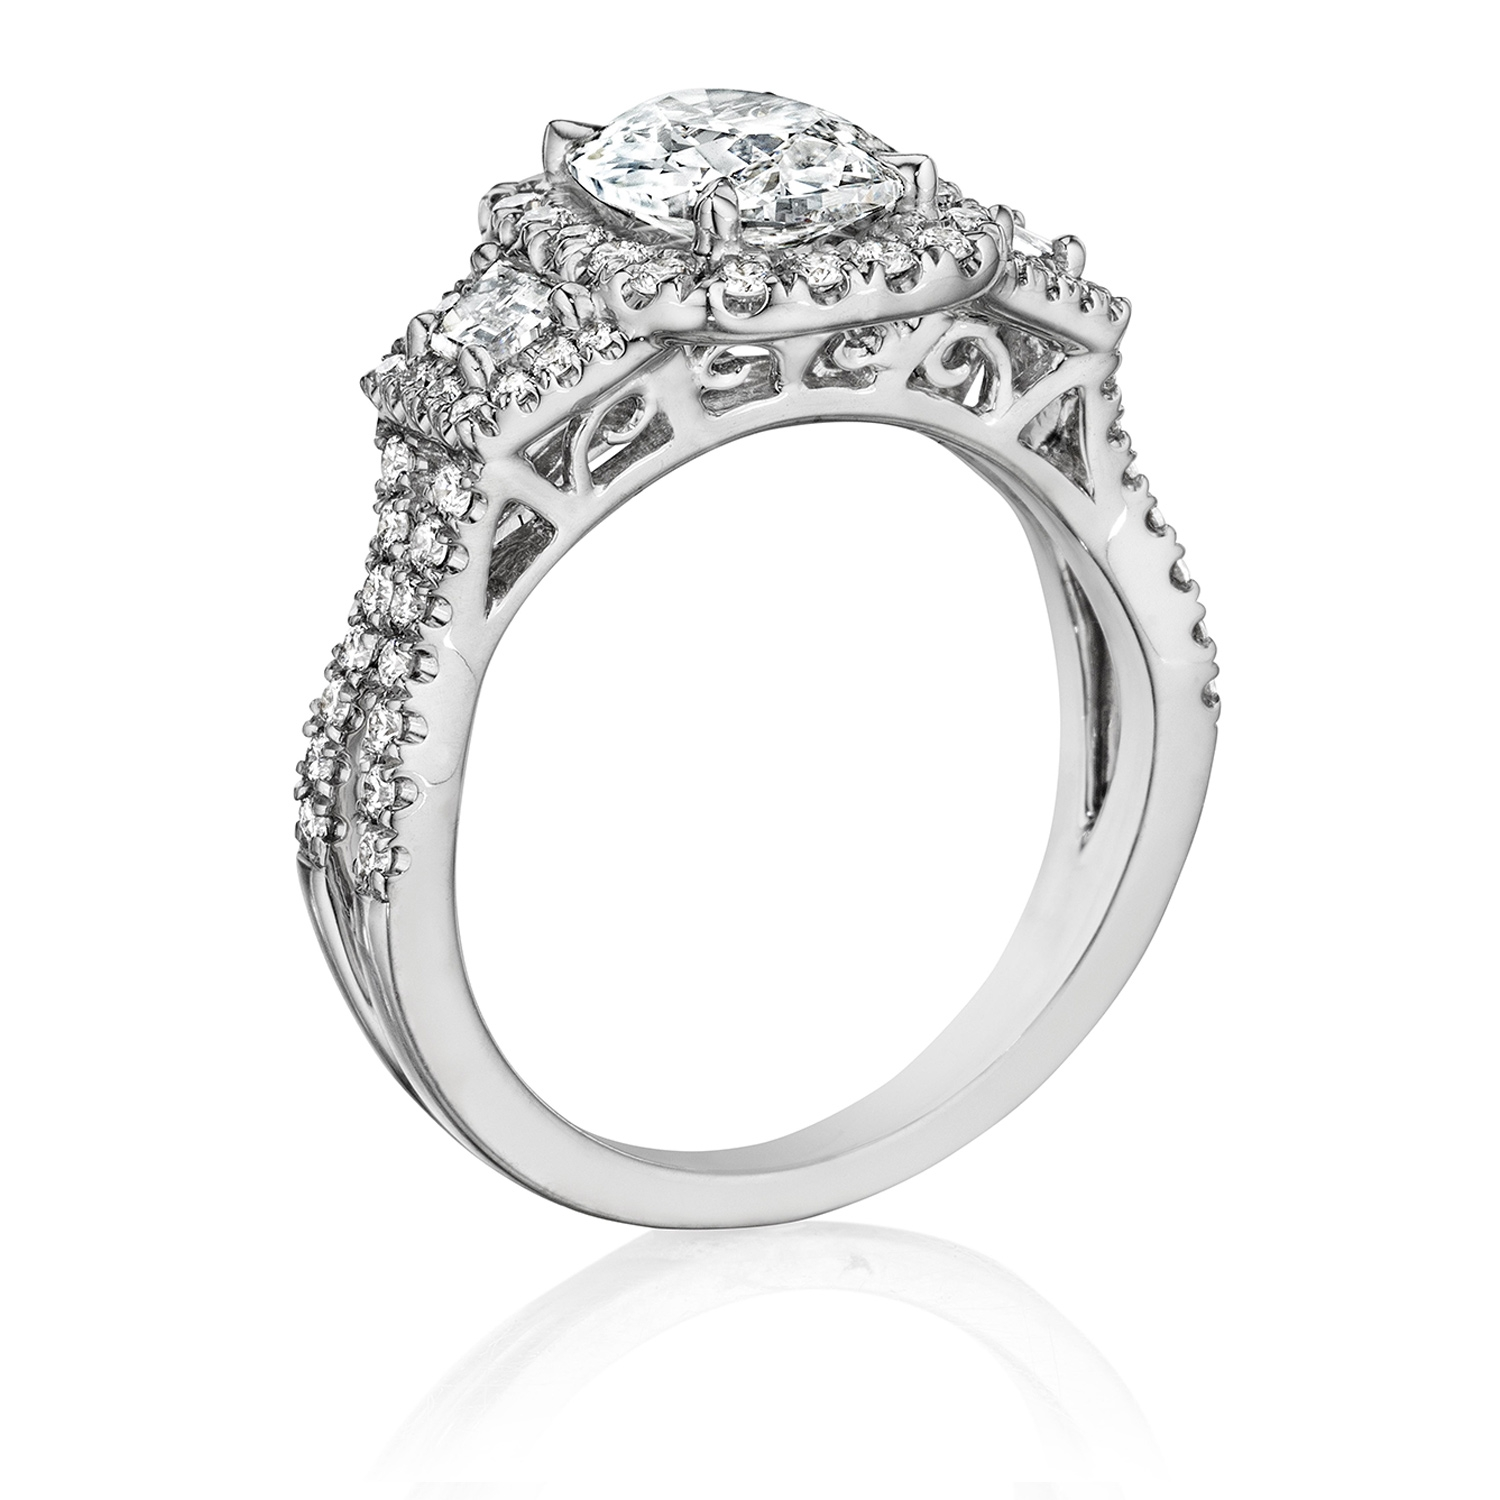 Henri Daussi ATRP Cushion Halo with Trapezoid Diamonds Engagement Ring Alternative View 1